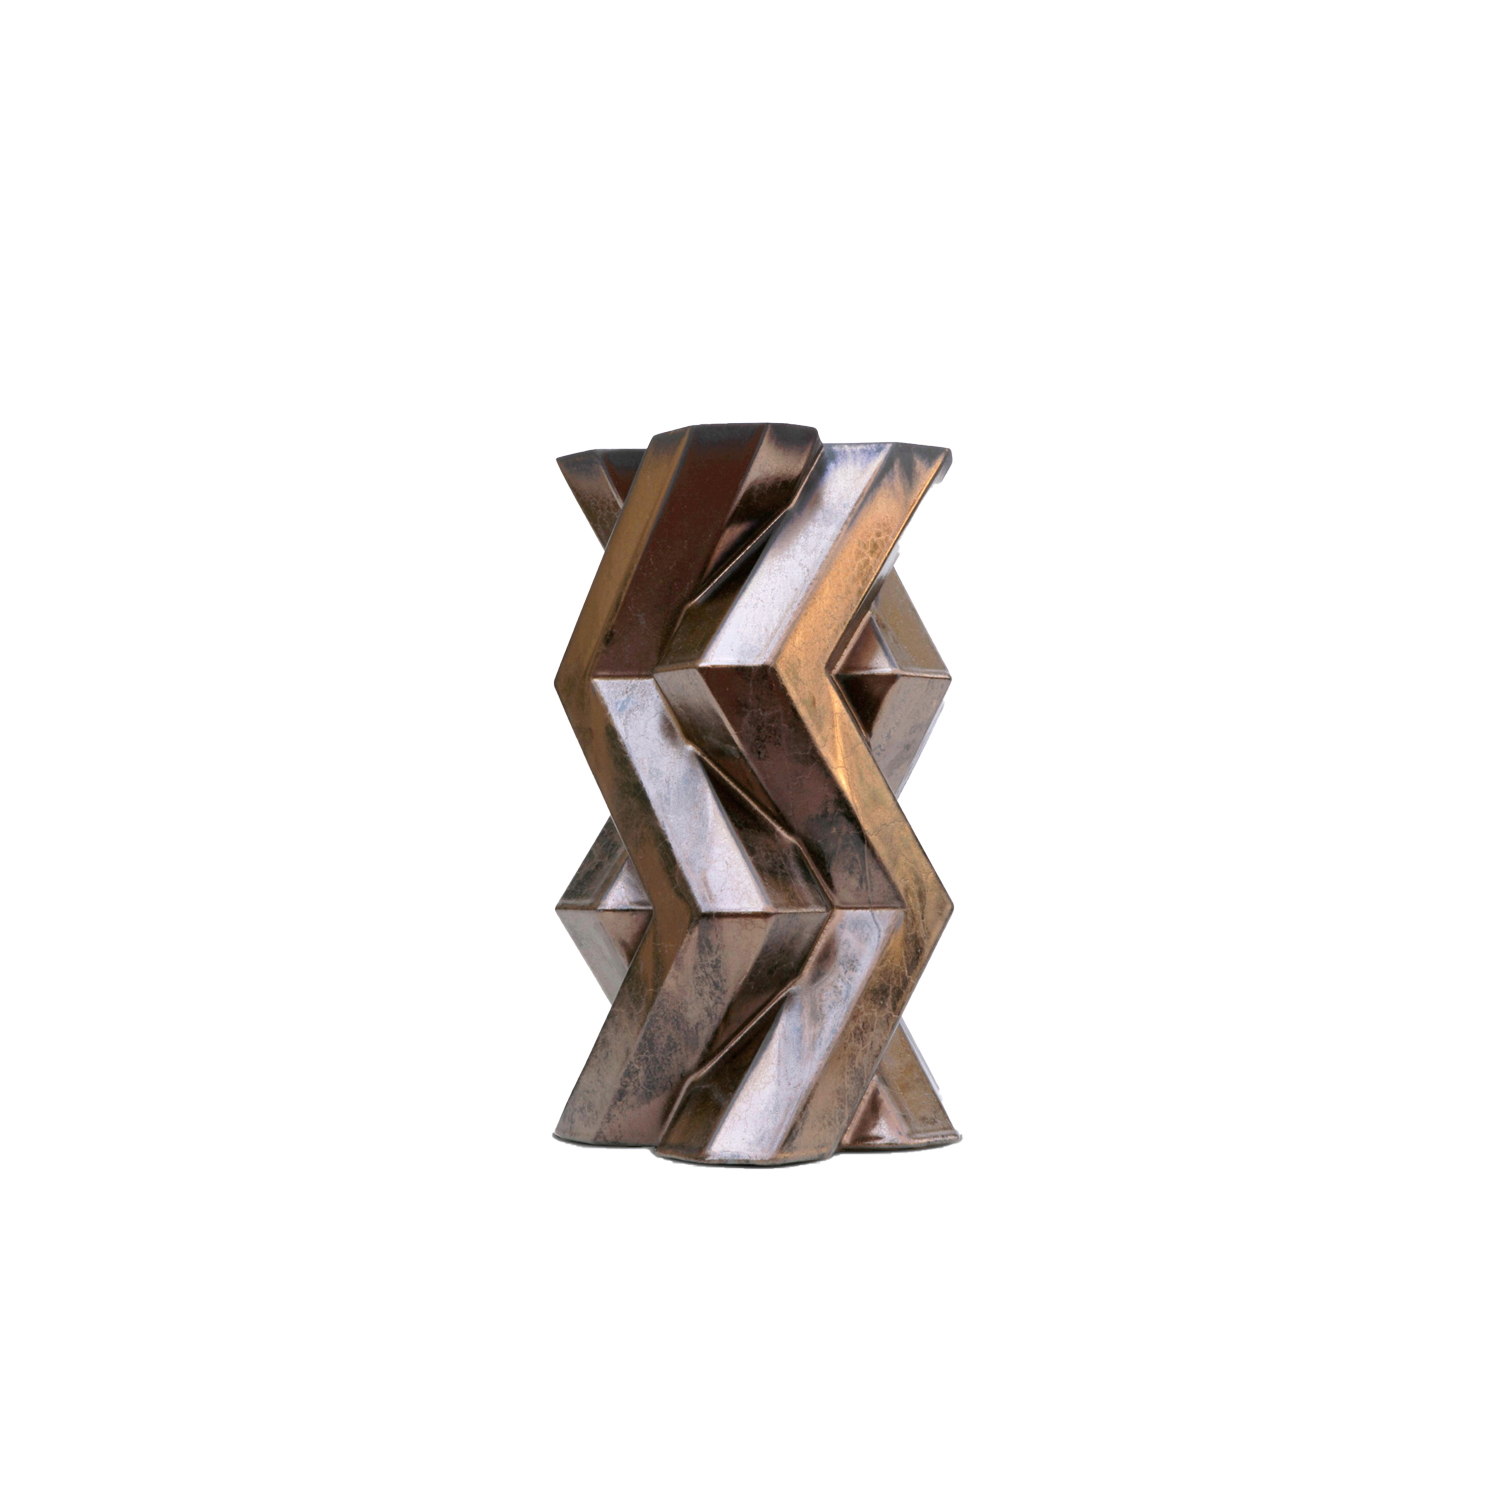 Fortress Tower Vase Bronze - Designer Lara Bohinc explores the marriage of ancient and futuristic form in the new Fortress Vase range, which has created a more complex geometric and modern structure from the original inspiration of the octagonal towers at the Diocletian Palace in Croatia. The resulting hexagonal blocks interlock and embrace to allow the play of light and shade on the many surfaces and angles. There are four Fortress shapes: the larger Column and Castle (45cm height), the Pillar (30cm height) and the Tower vase (37cm height). These are hand made from ceramic in a small Italian artisanal workshop and come in three finishes: dark gold, bronze and speckled white.  | Matter of Stuff